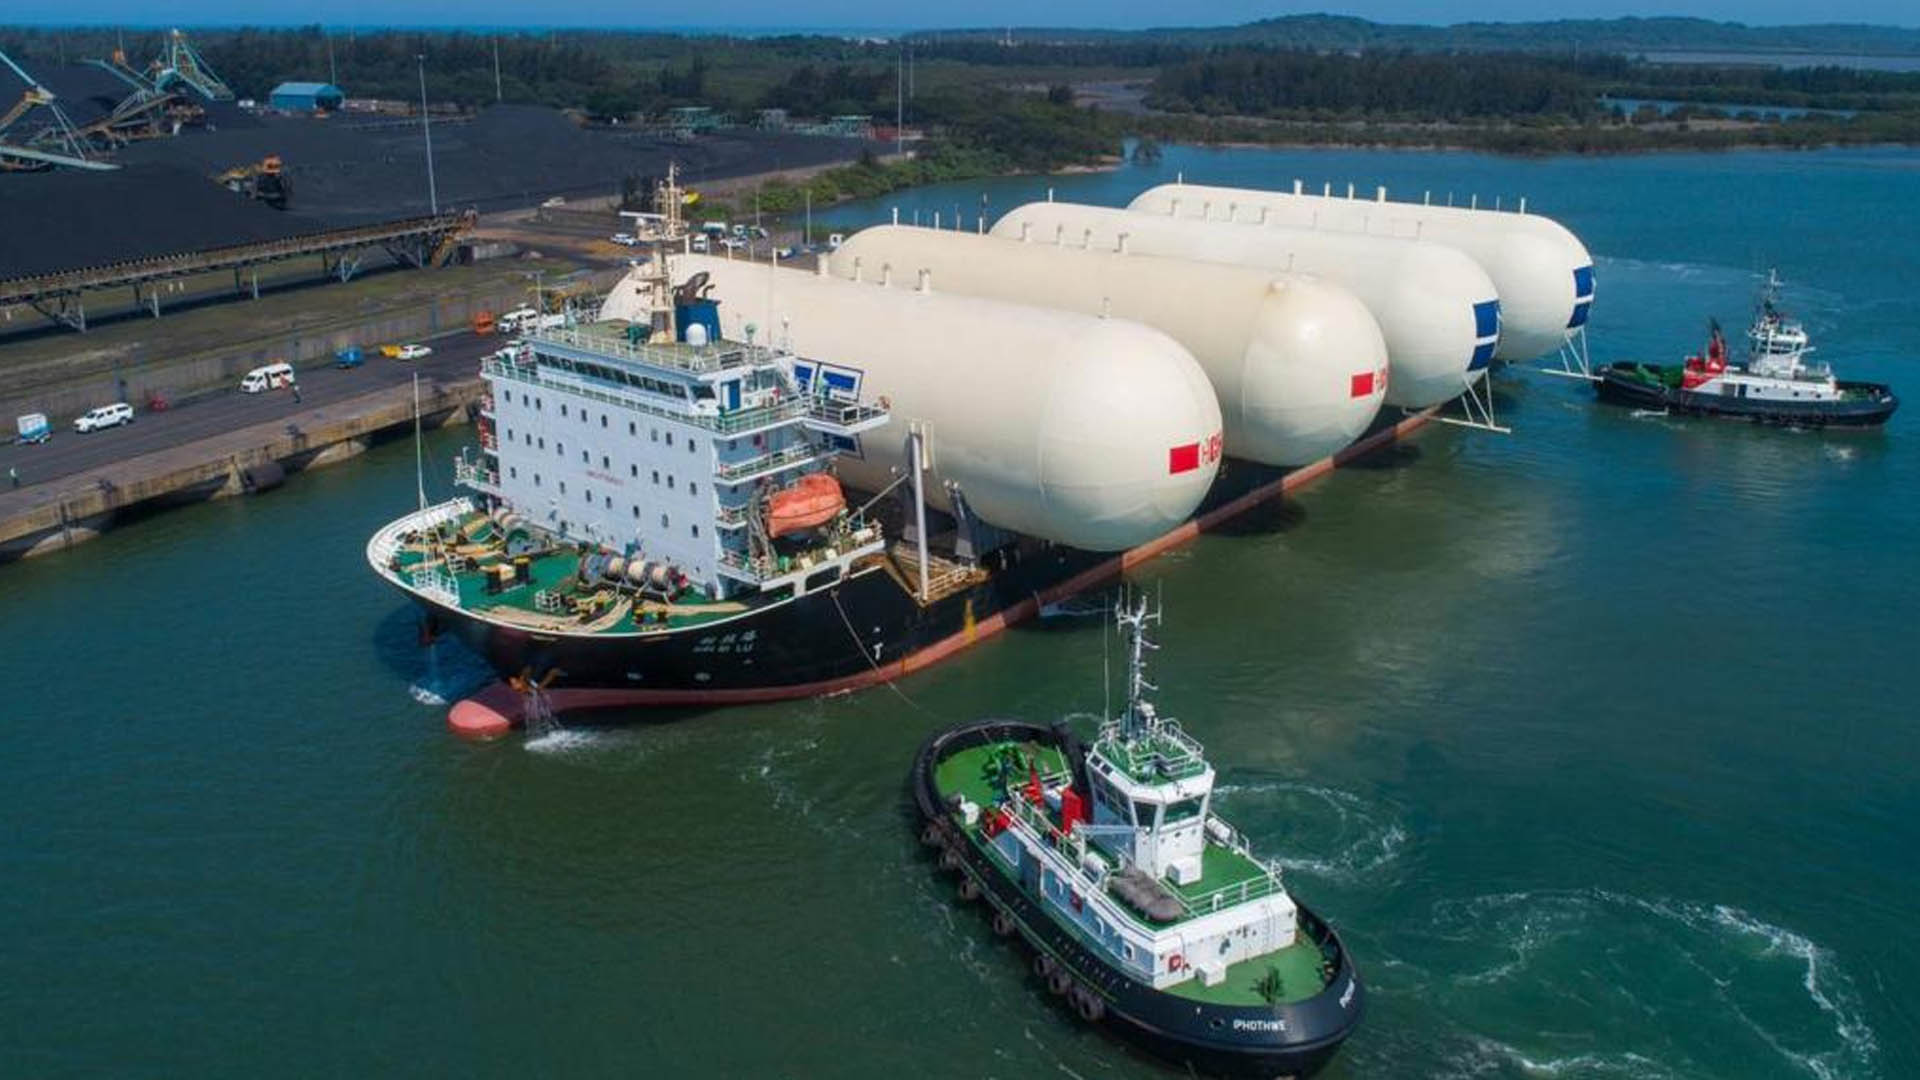 Deck Cargo Ship Brings Storage Bullets to Port of Richards Bay LPG Facility